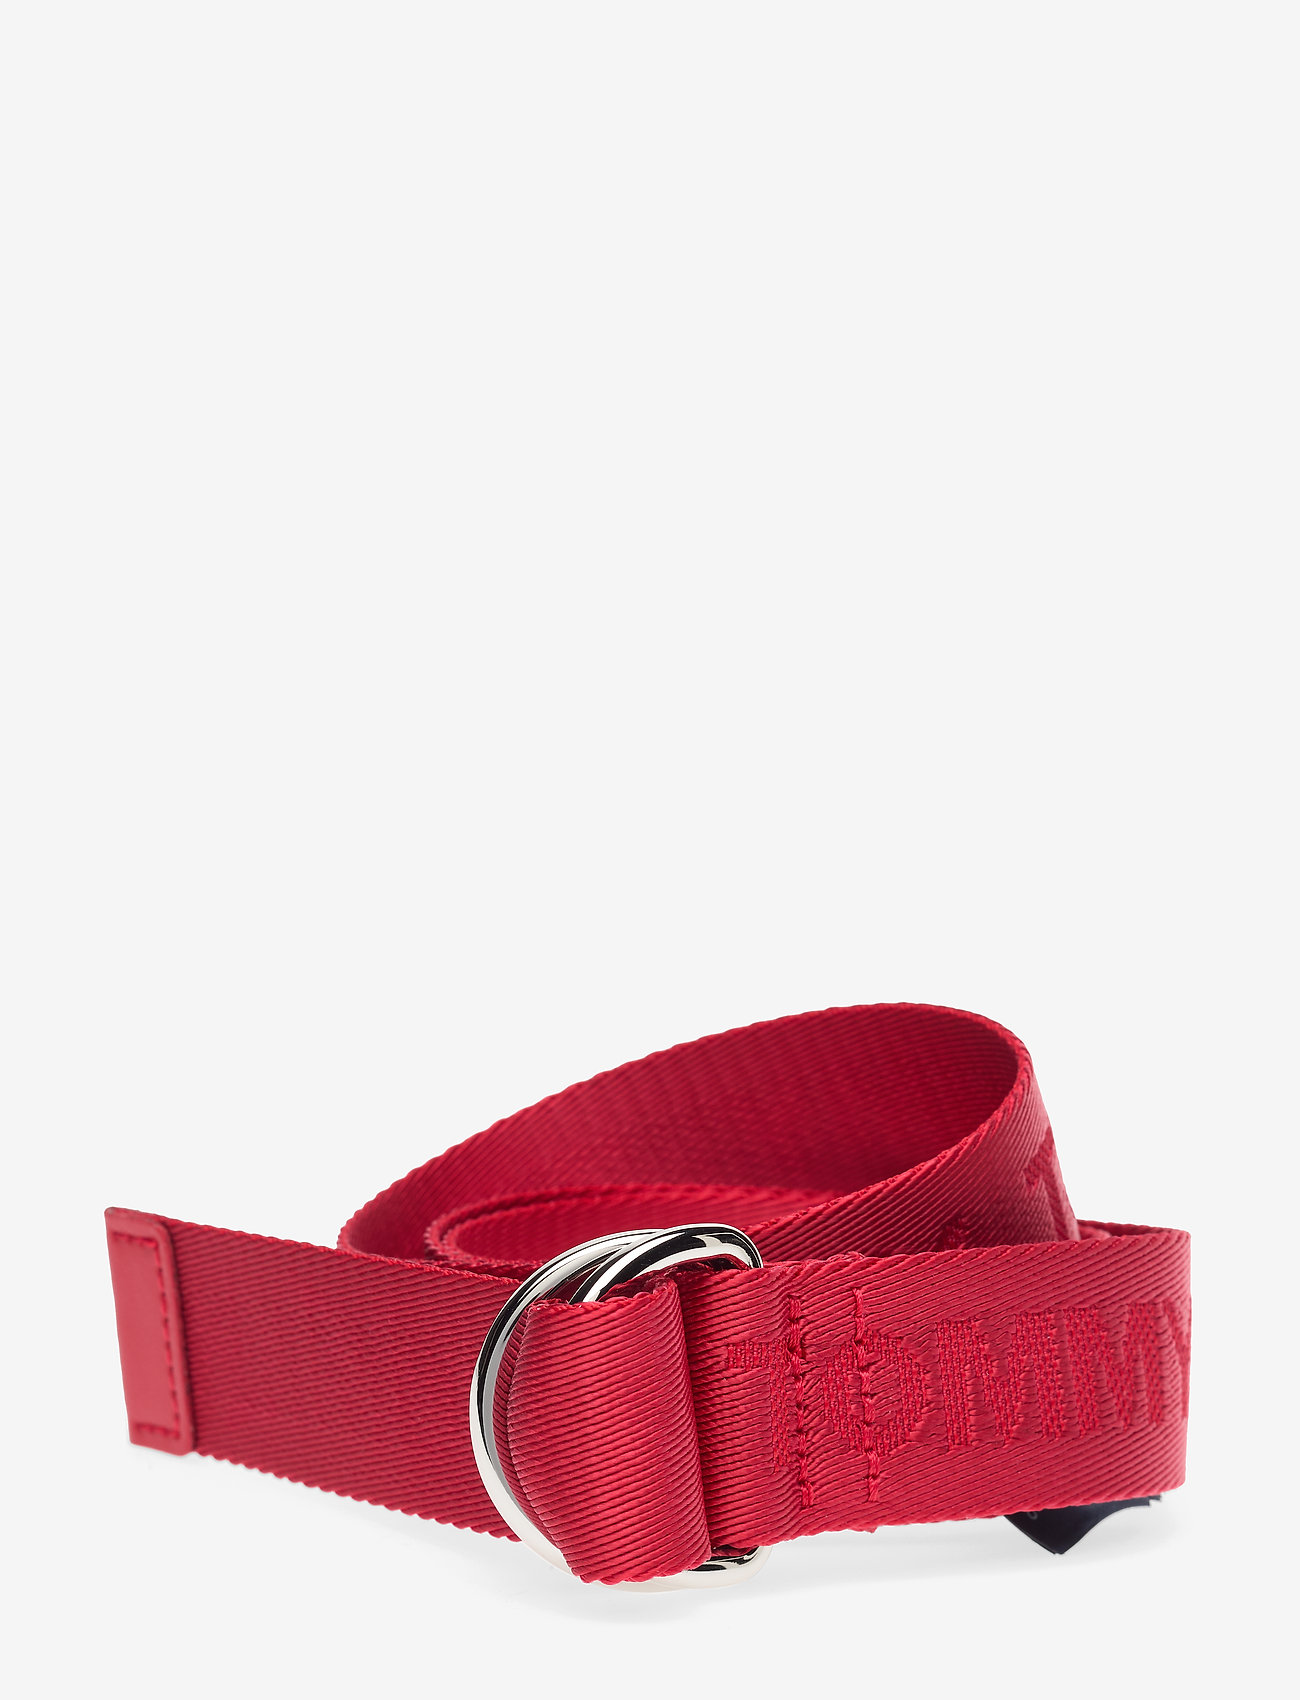 Tommy Hilfiger - KIDS WEBBING BELT 3. - barbados cherry - 0